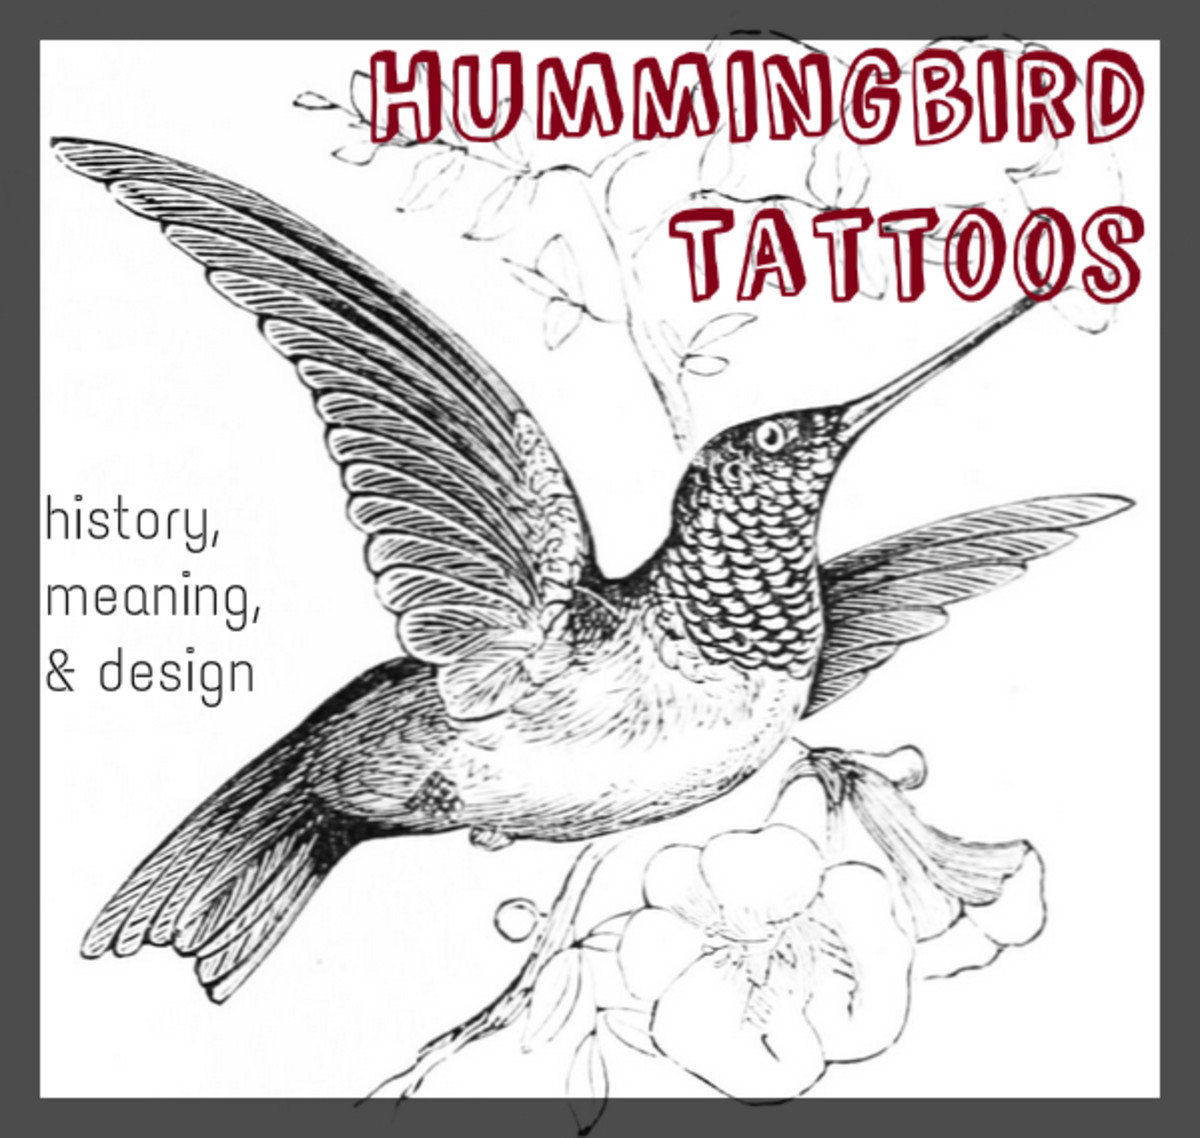 Hummingbird Tattoos: History, Meaning, & Design